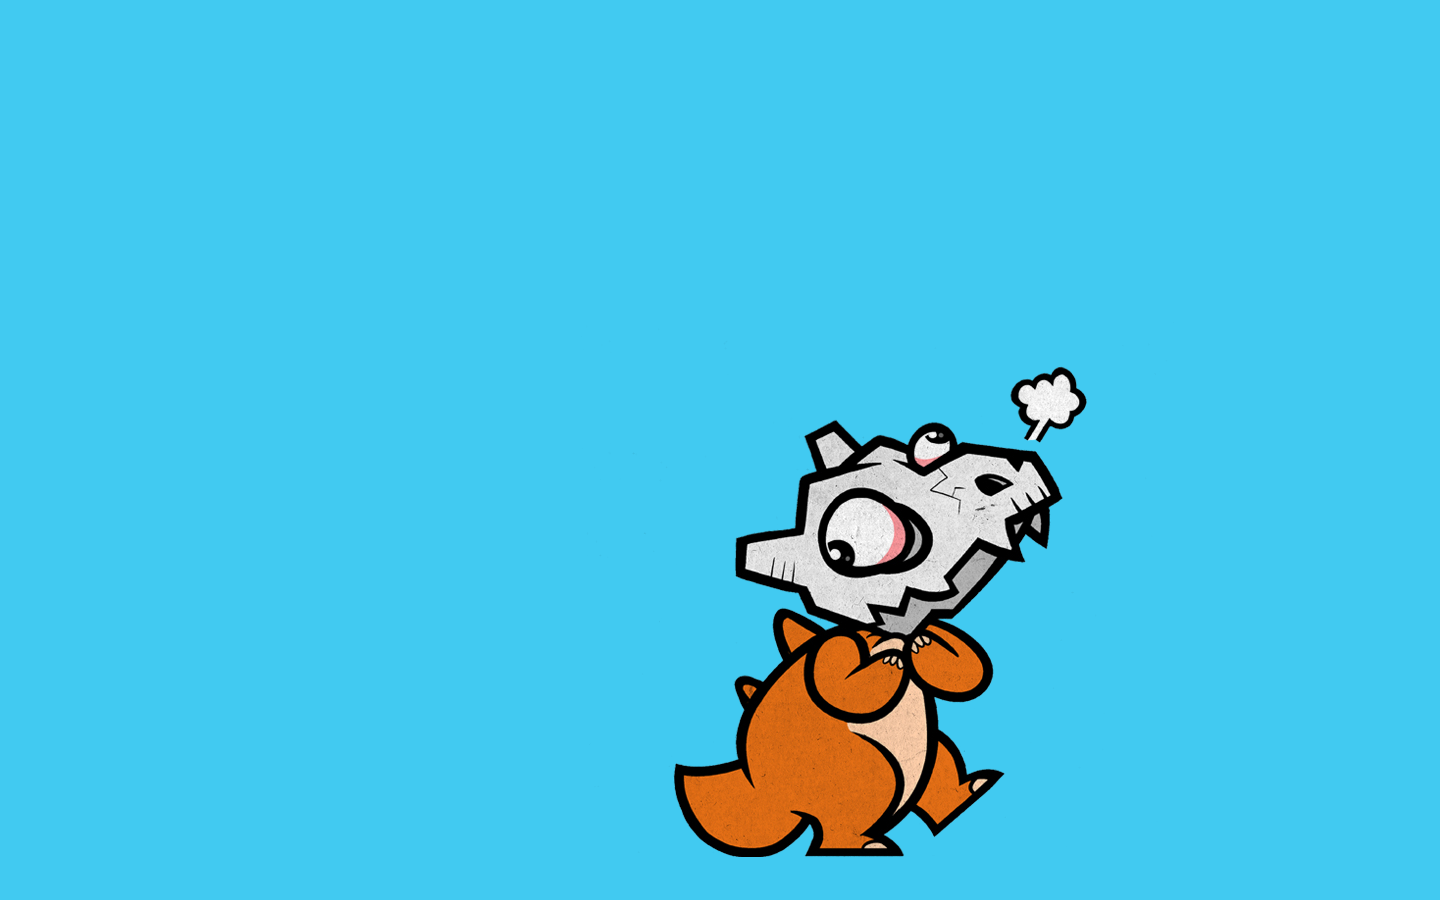 Pokemon Cubone Wallpaper 1440x900 Pokemon Cubone 1440x900